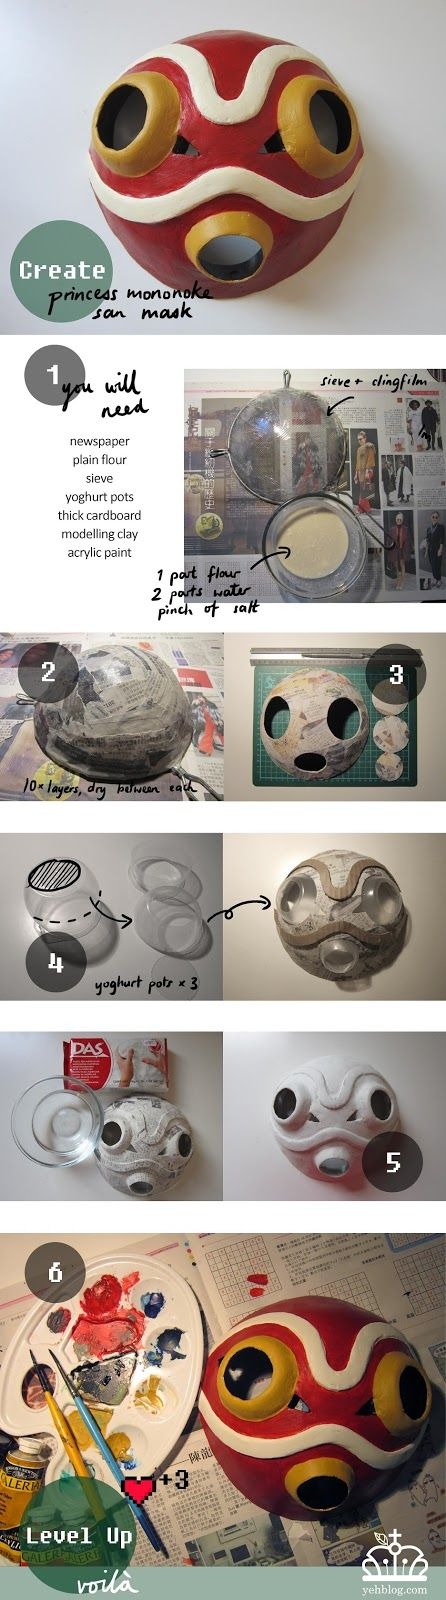 yeh!blog: DIY How to make Princess Mononoke Mask